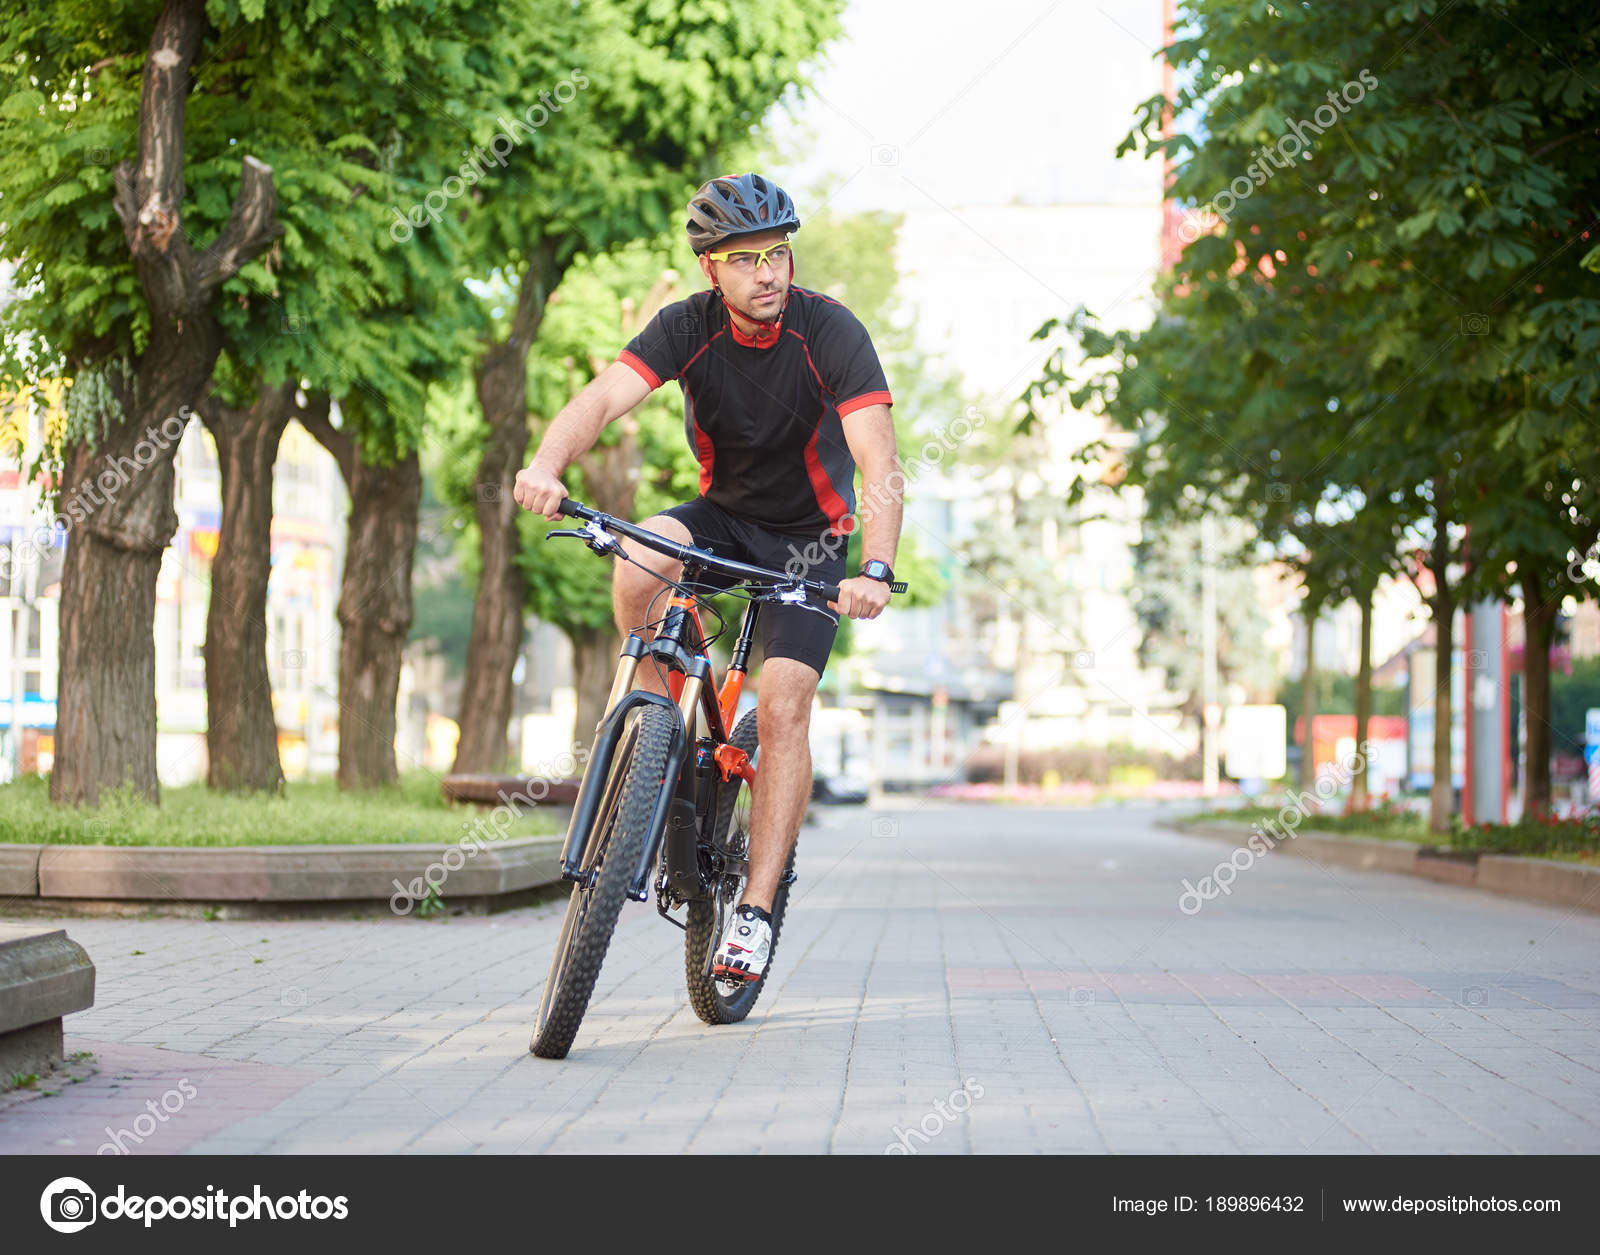 Man Professional Biker Riding Bicycle Empty City Streets Green Trees